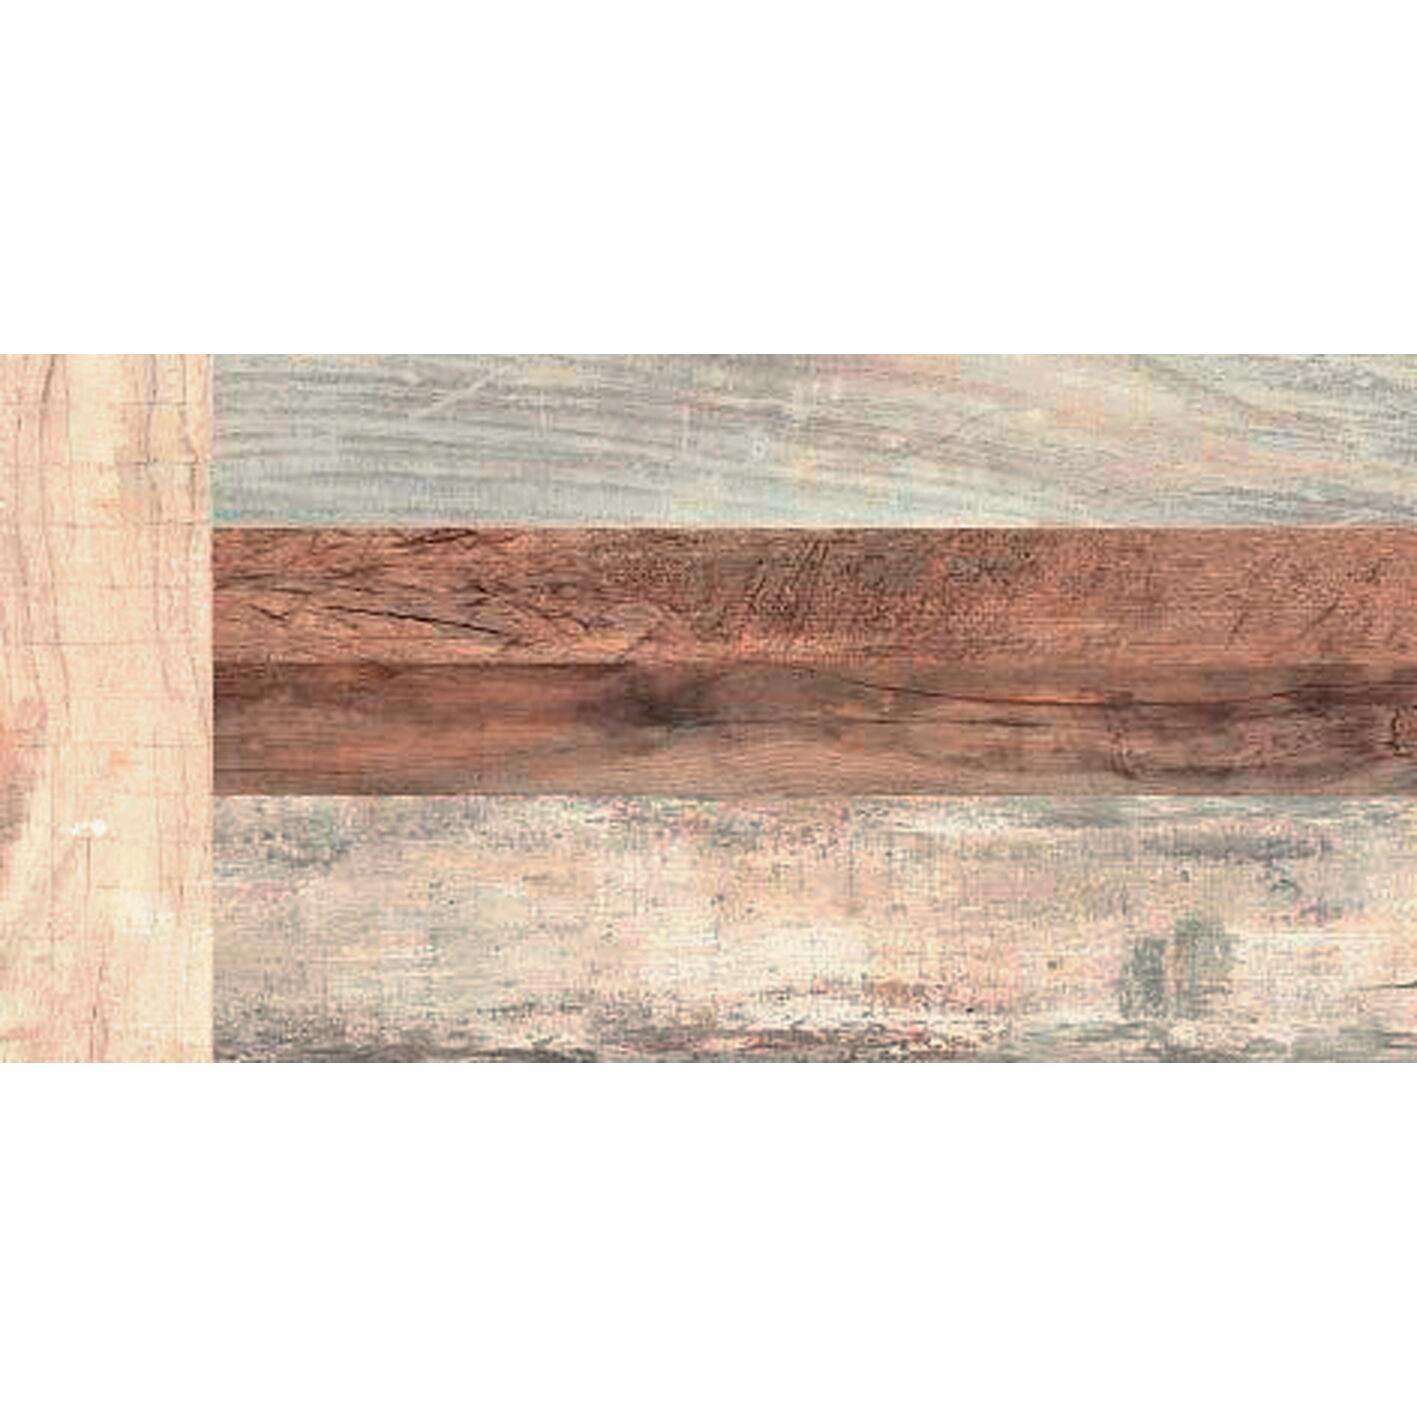 Piastrella Wood and City 30.8 x 61.5 cm sp. 7.5 mm PEI 4/5 multicolore - 2